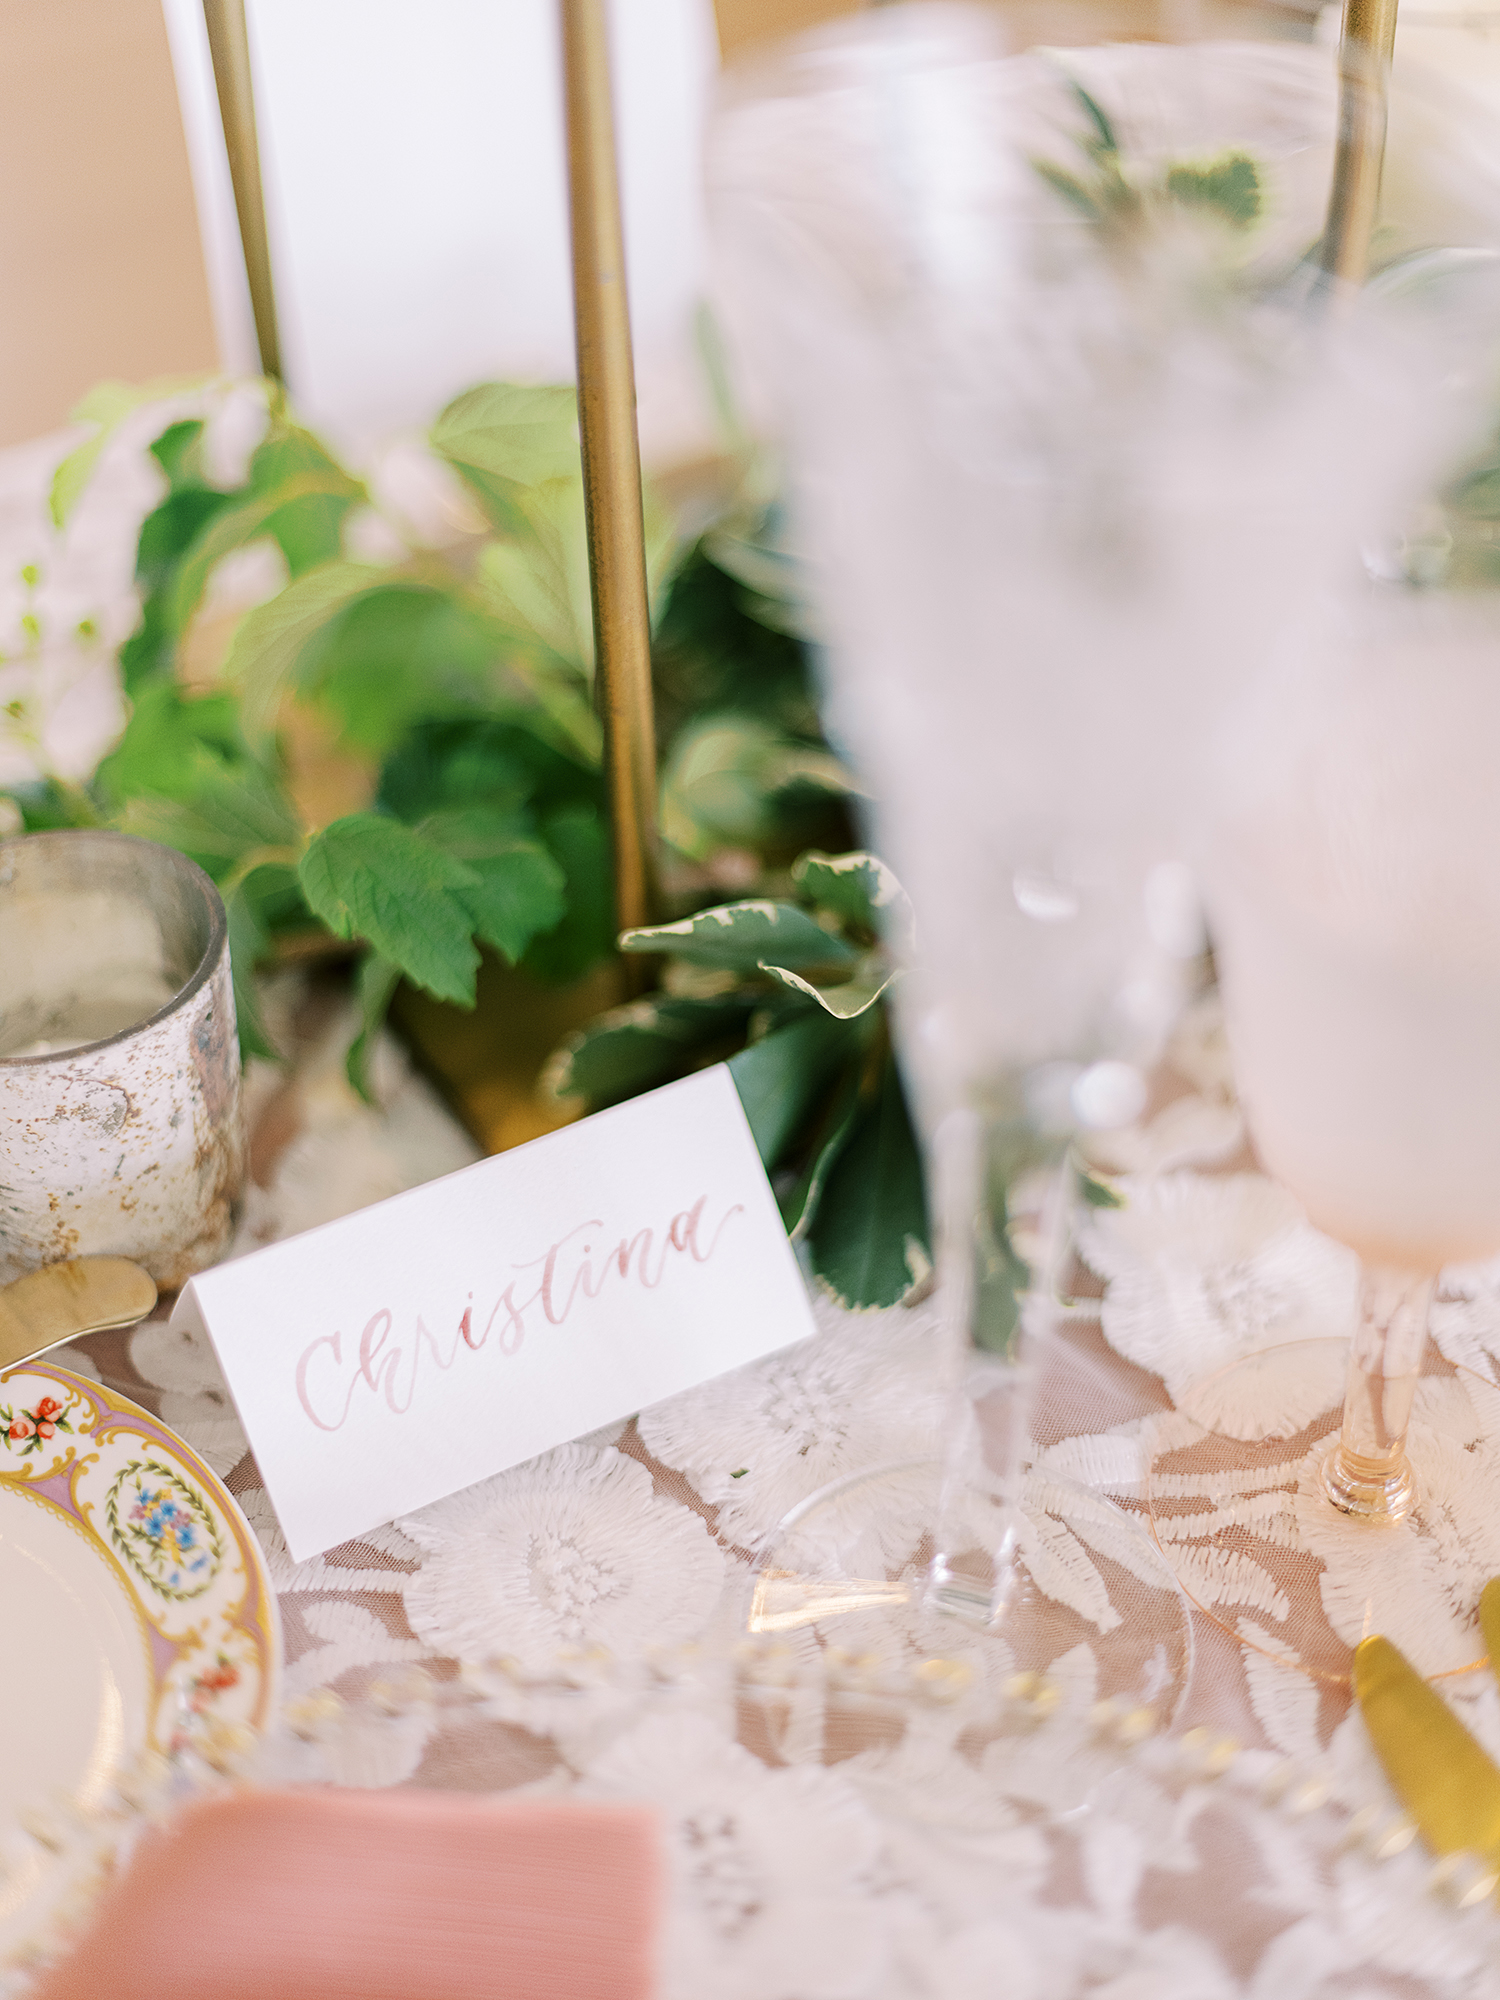 Sam Allen Creates – Watercolor Tent Card for Wedding Reception placecard – Clary Pfeiffer Photography detail